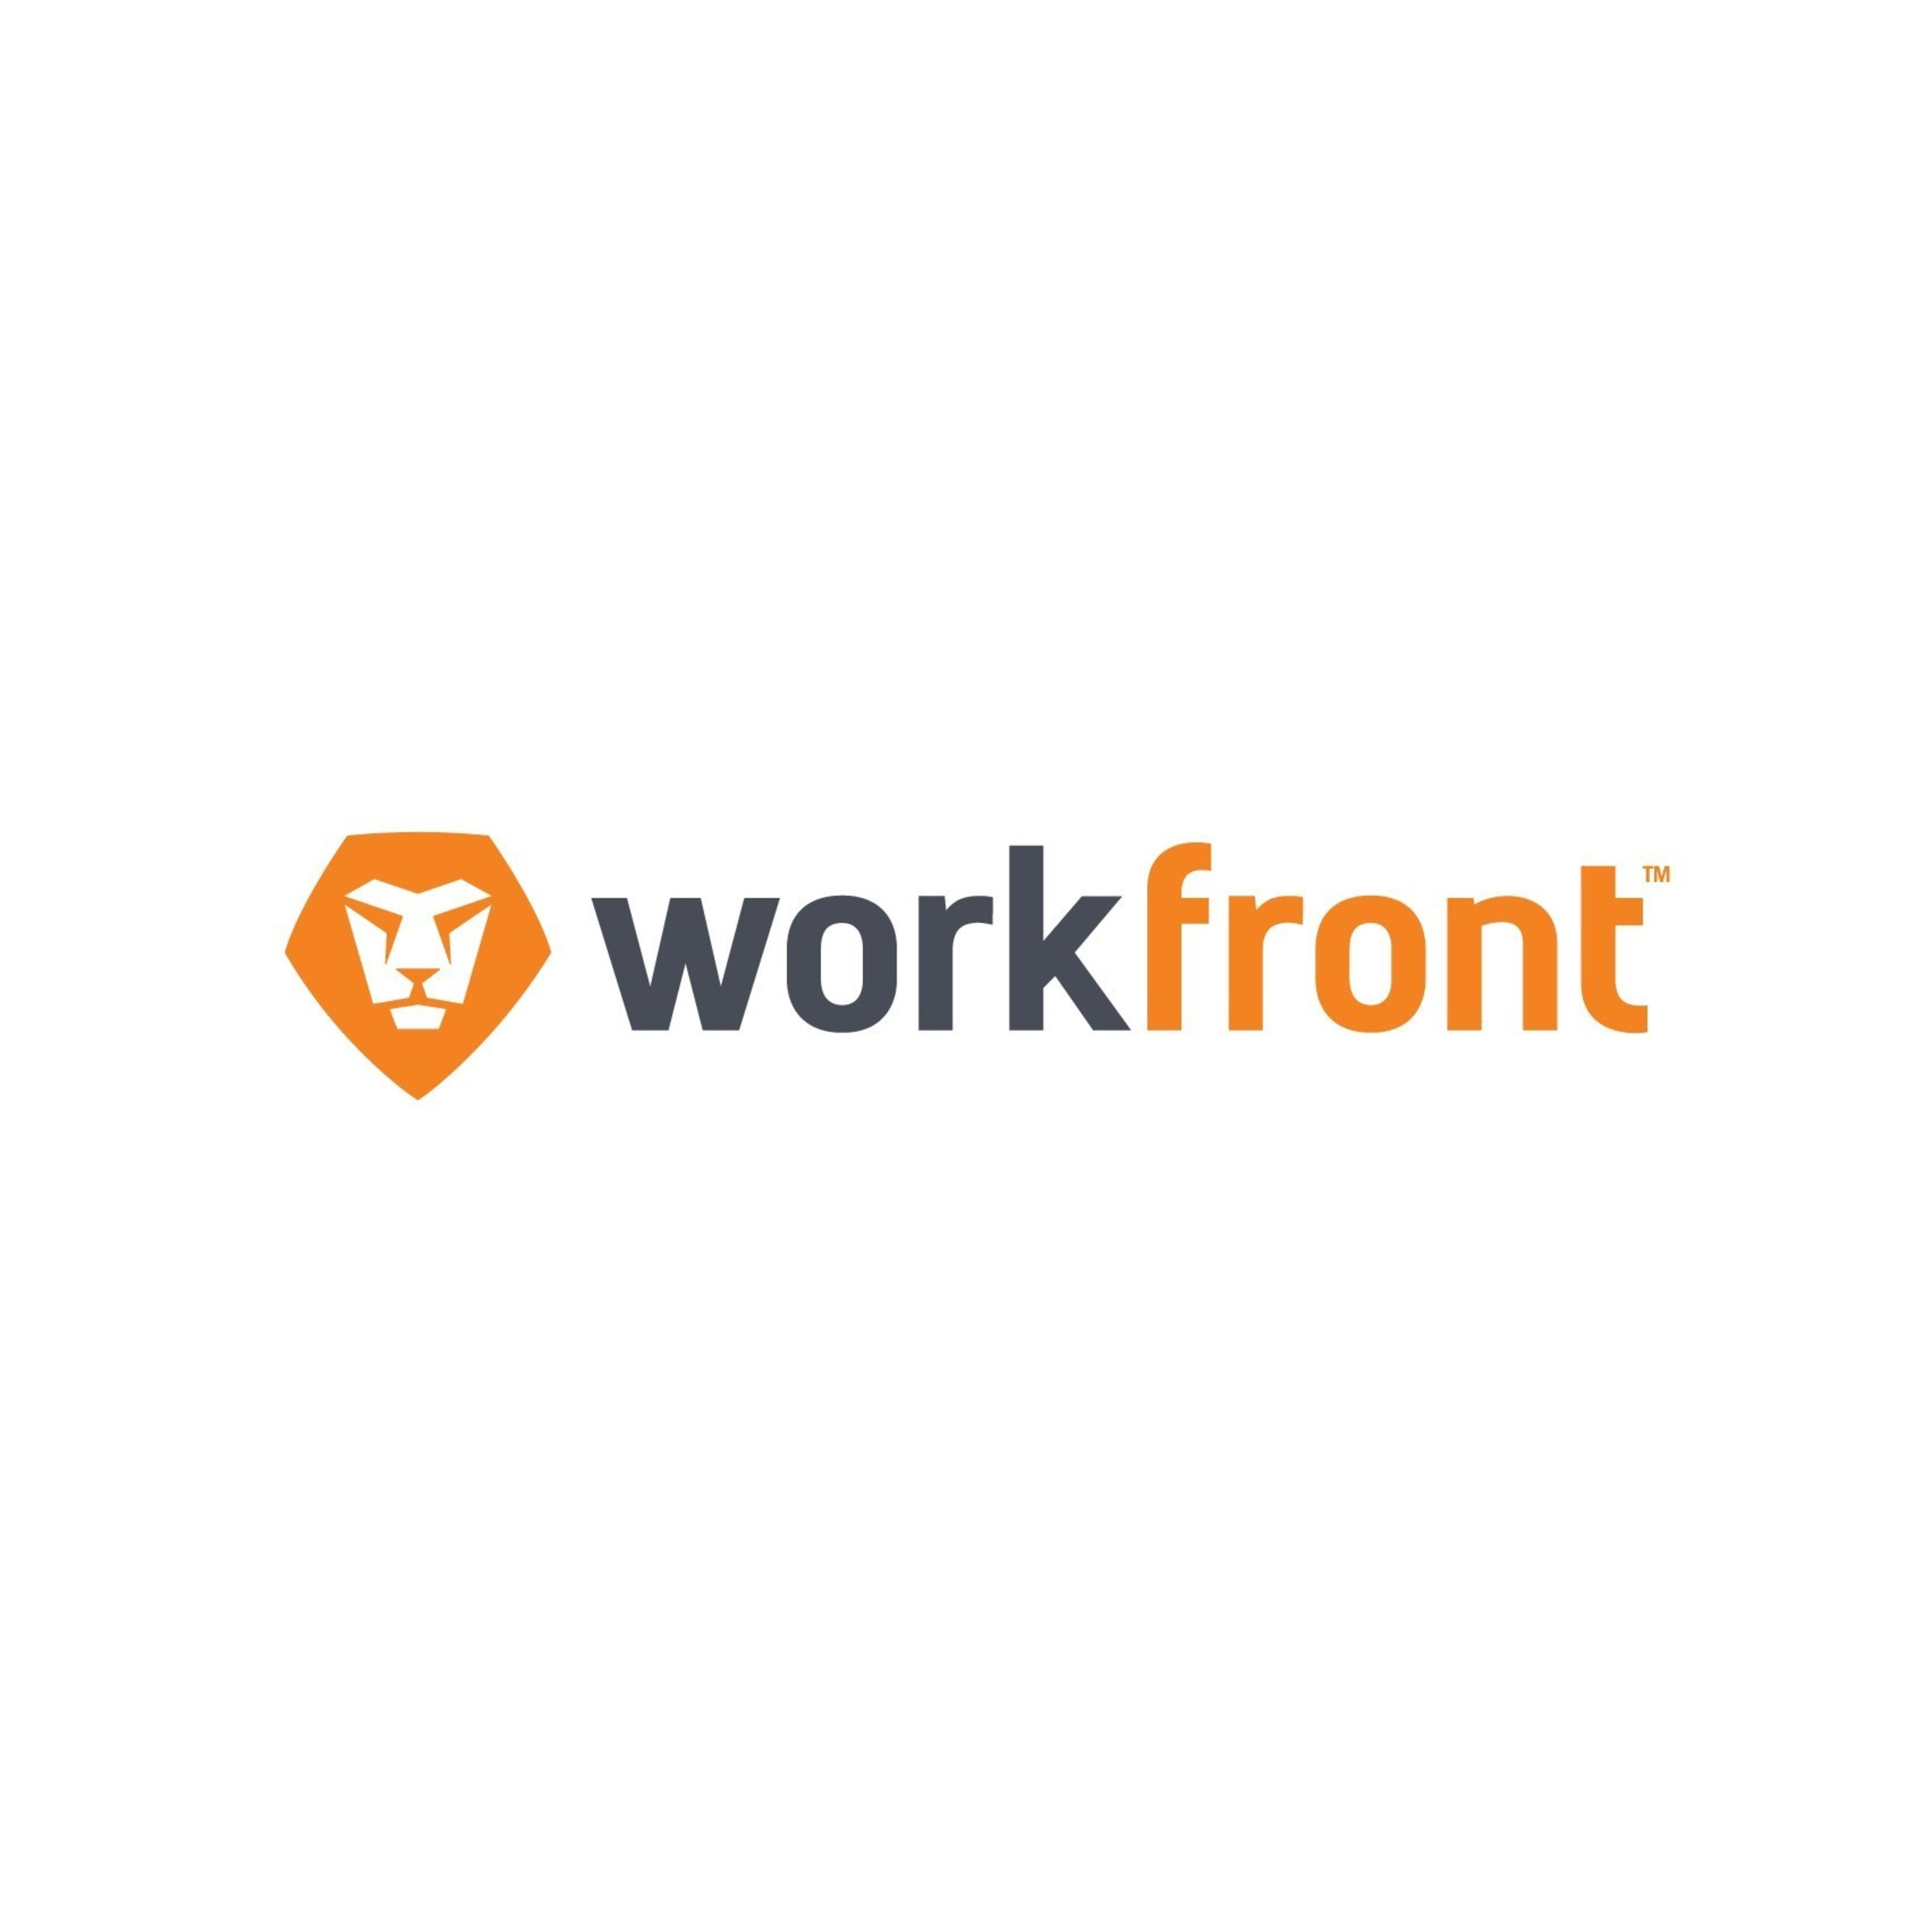 Workfront Recognized as a Strong Performer in Independent Portfolio Management Tools for The Tech Management Agenda Report